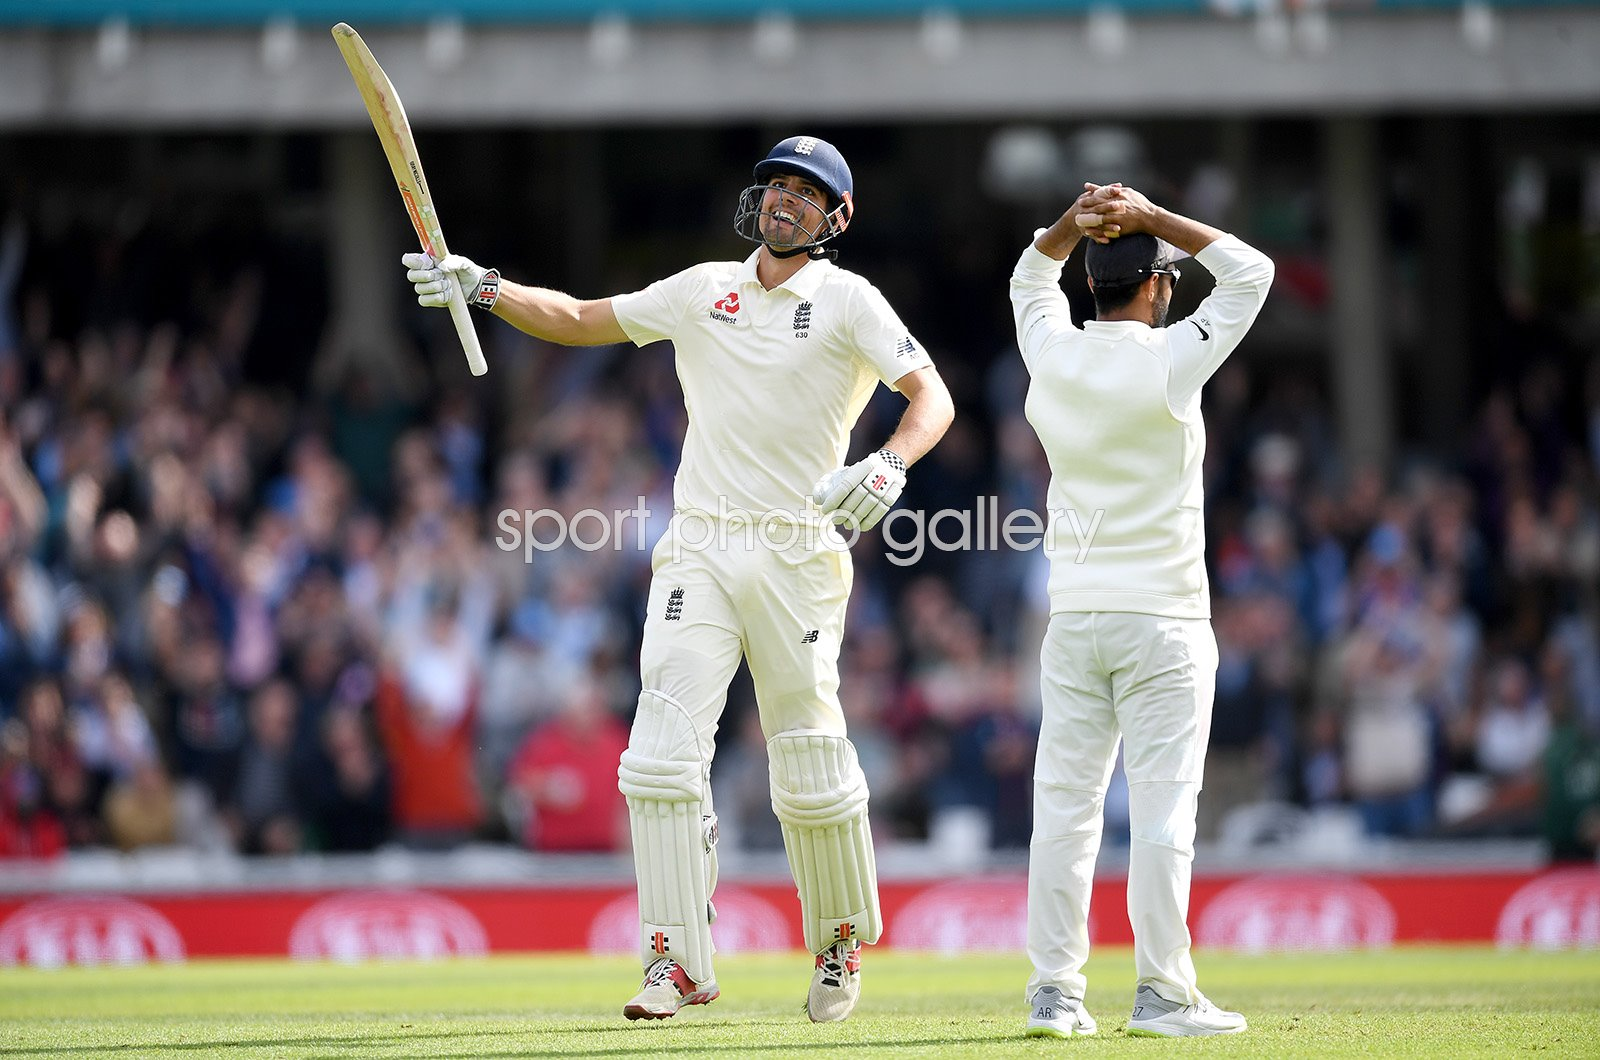 Alastair Cook England reaches 100 Final Innings The Oval 2018